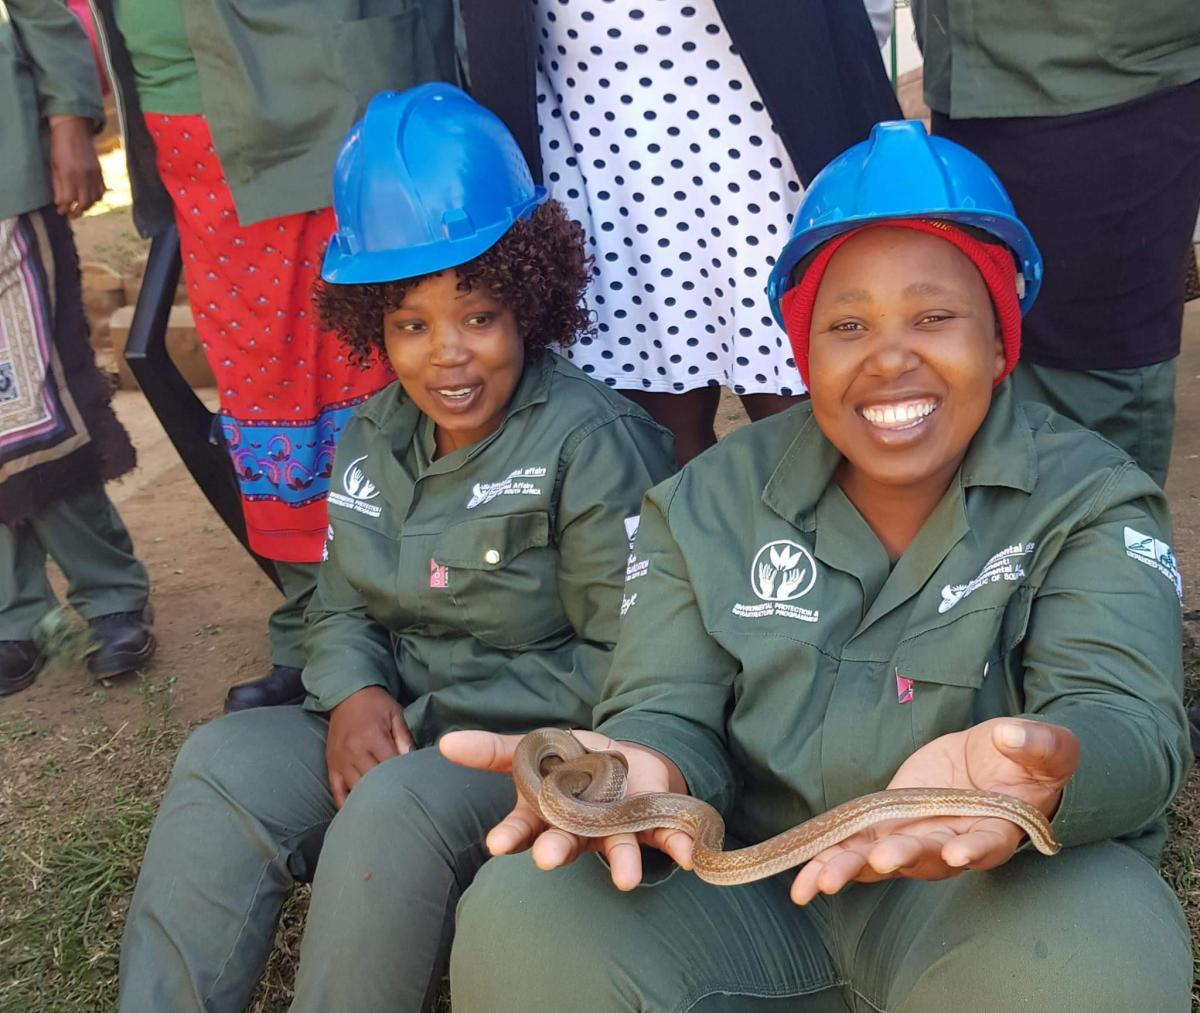 The Mayibuye Game Reserve has already created jobs and will ensure that the wildlife economy thrives.